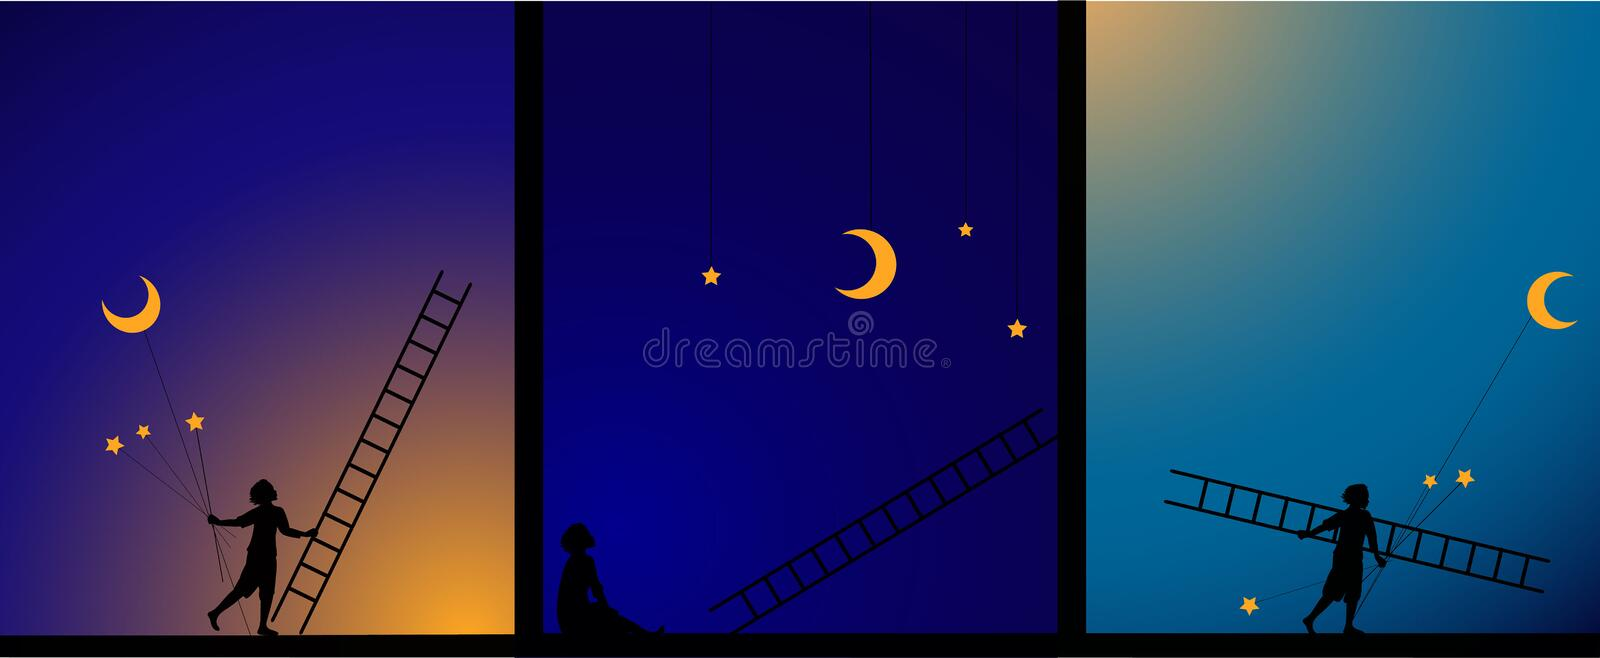 Decorate the sky, work in theater, image story, e, boy fix the star and moon with ladder, work on the heavens, dream,. Shadows royalty free illustration